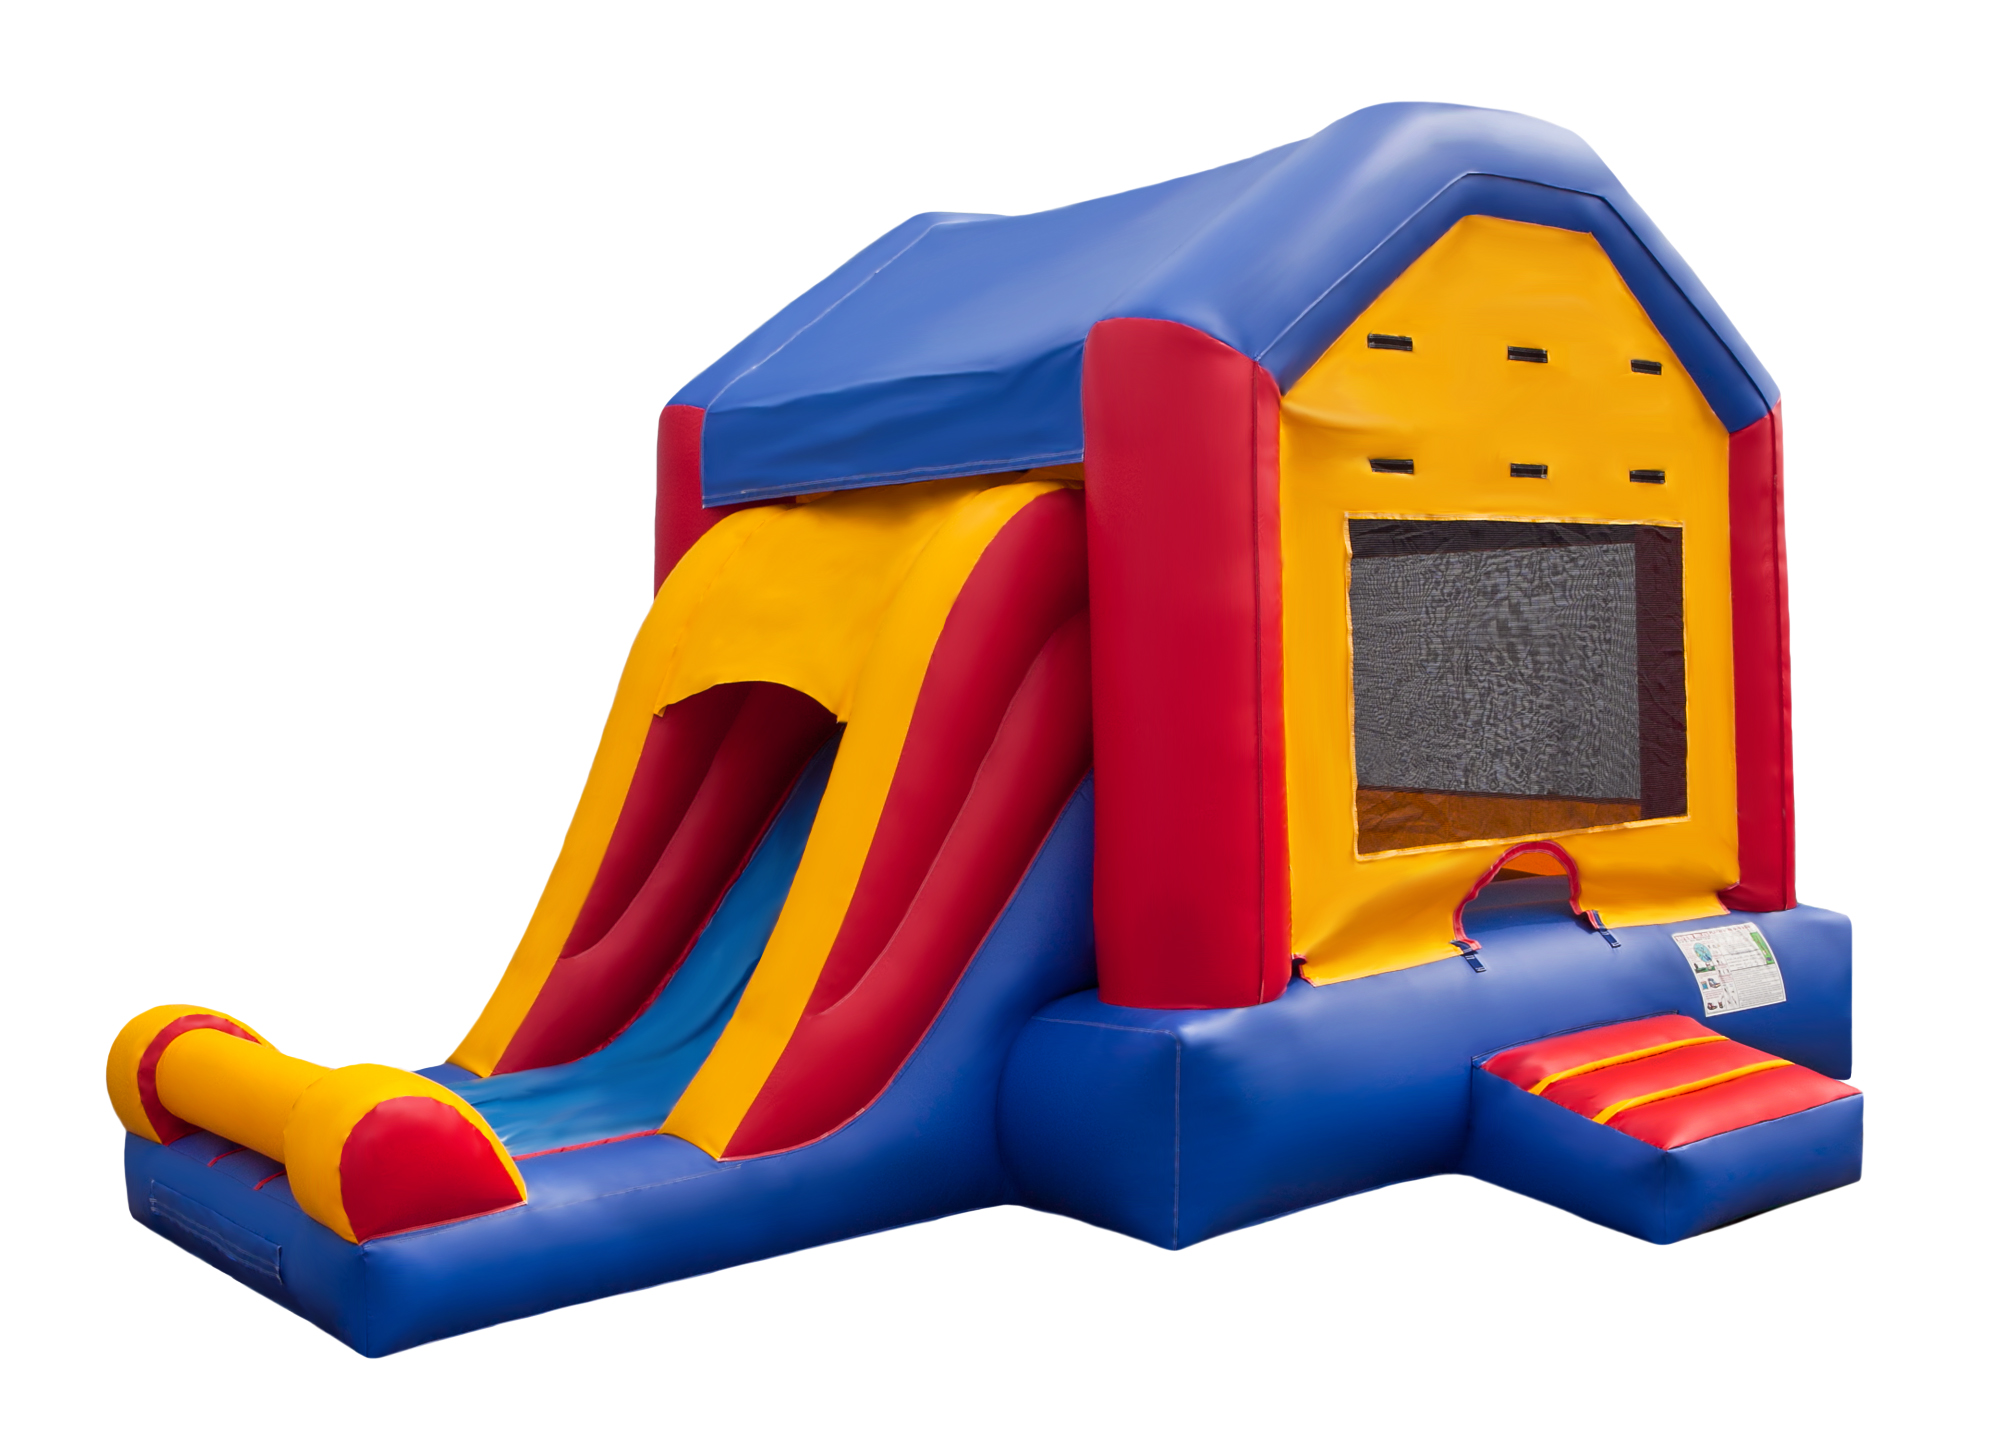 how much does it cost to rent a jump house